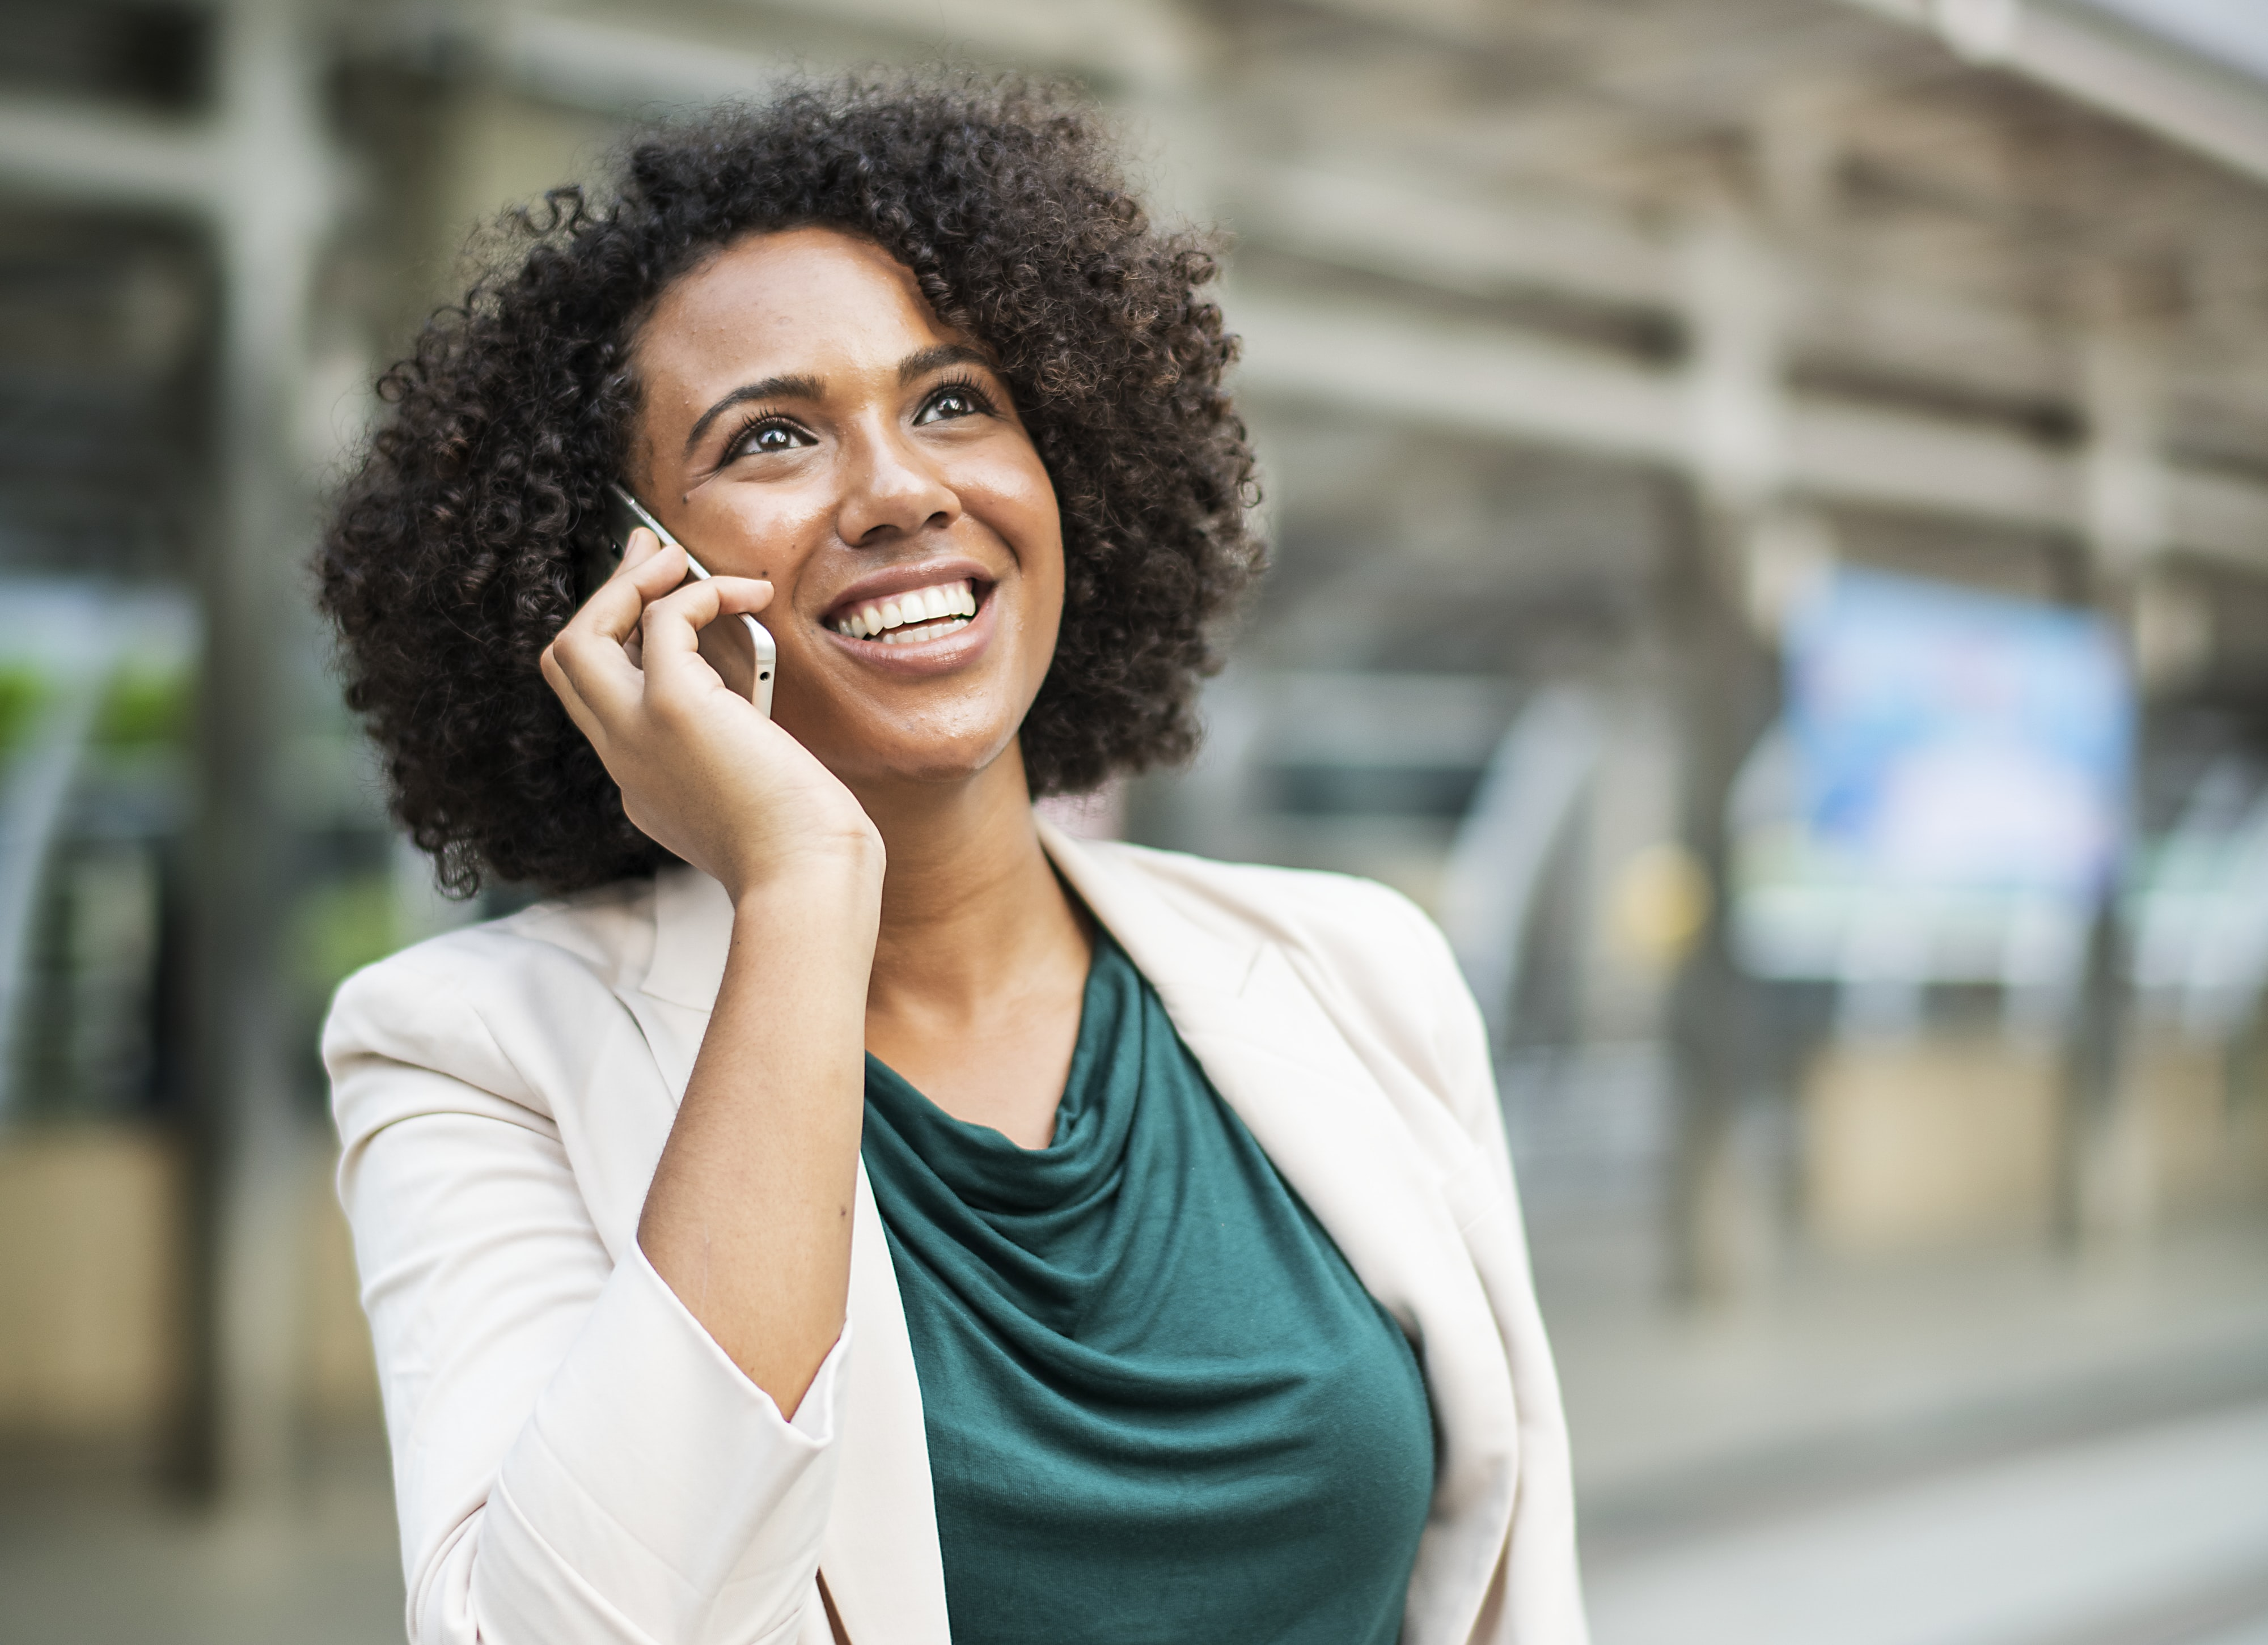 selective focus photography woman smiling while calling using smartphone